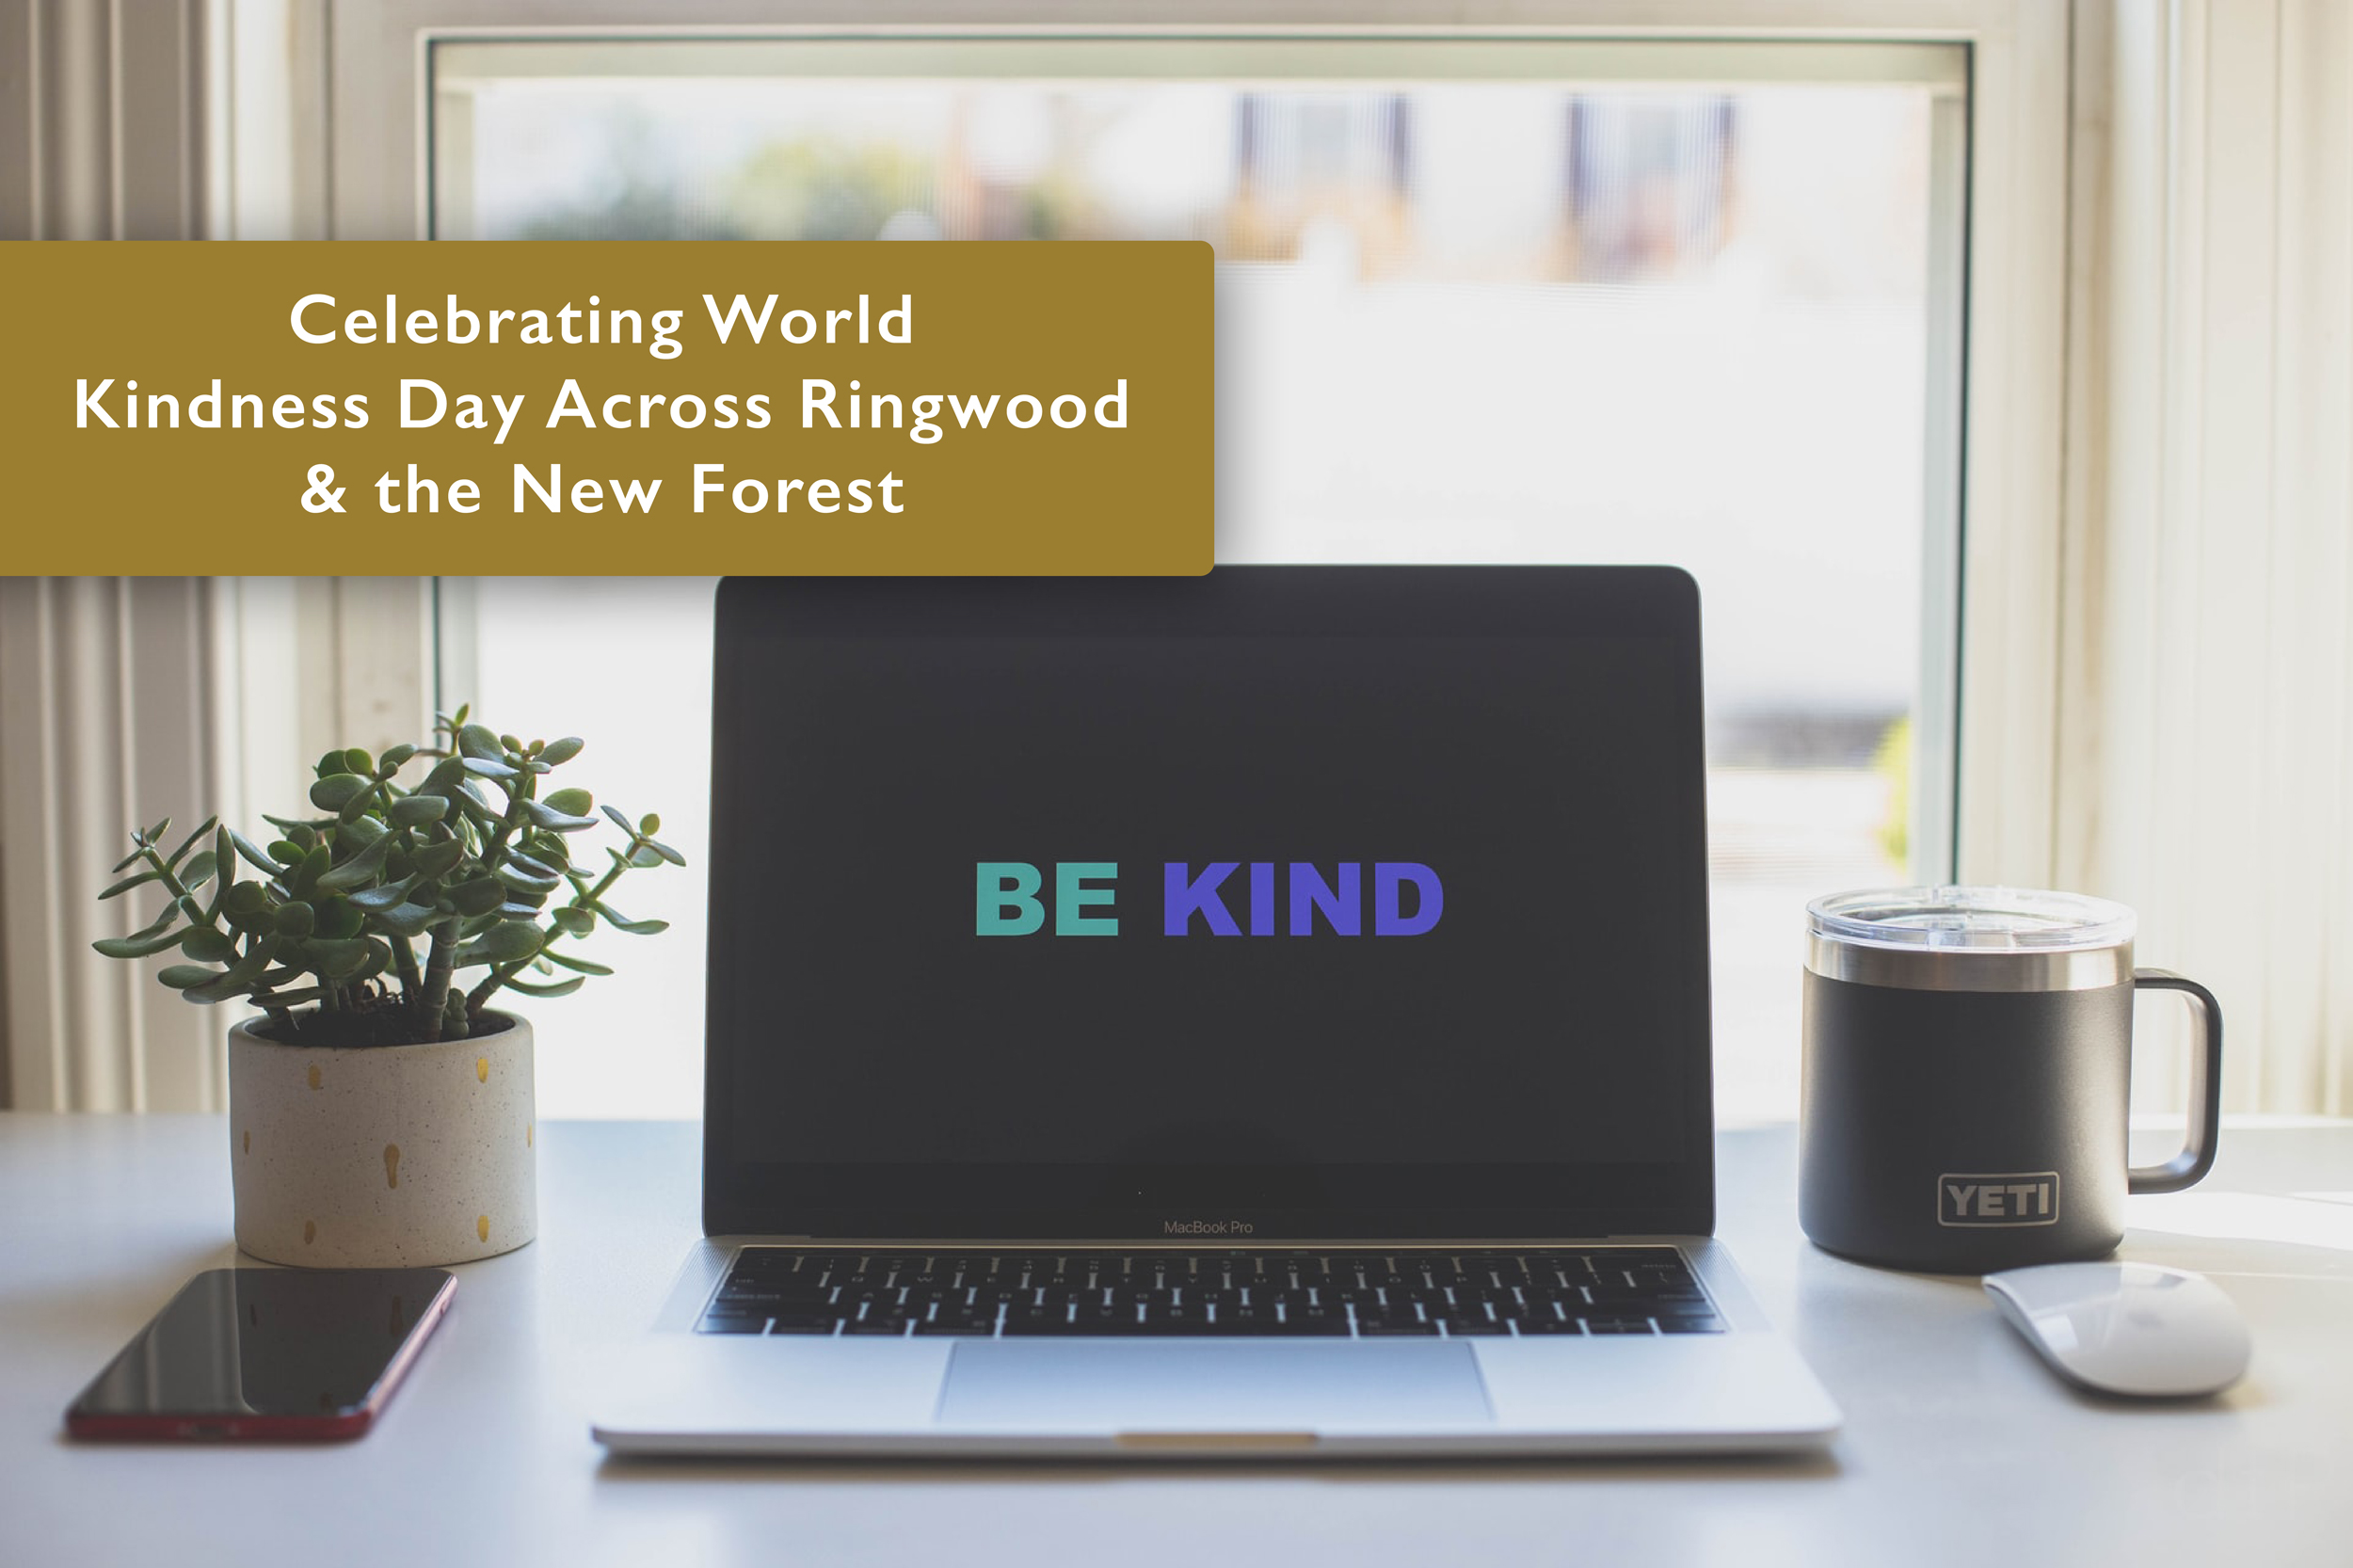 Celebrating World Kindness Day Across Ringwood & the New Forest